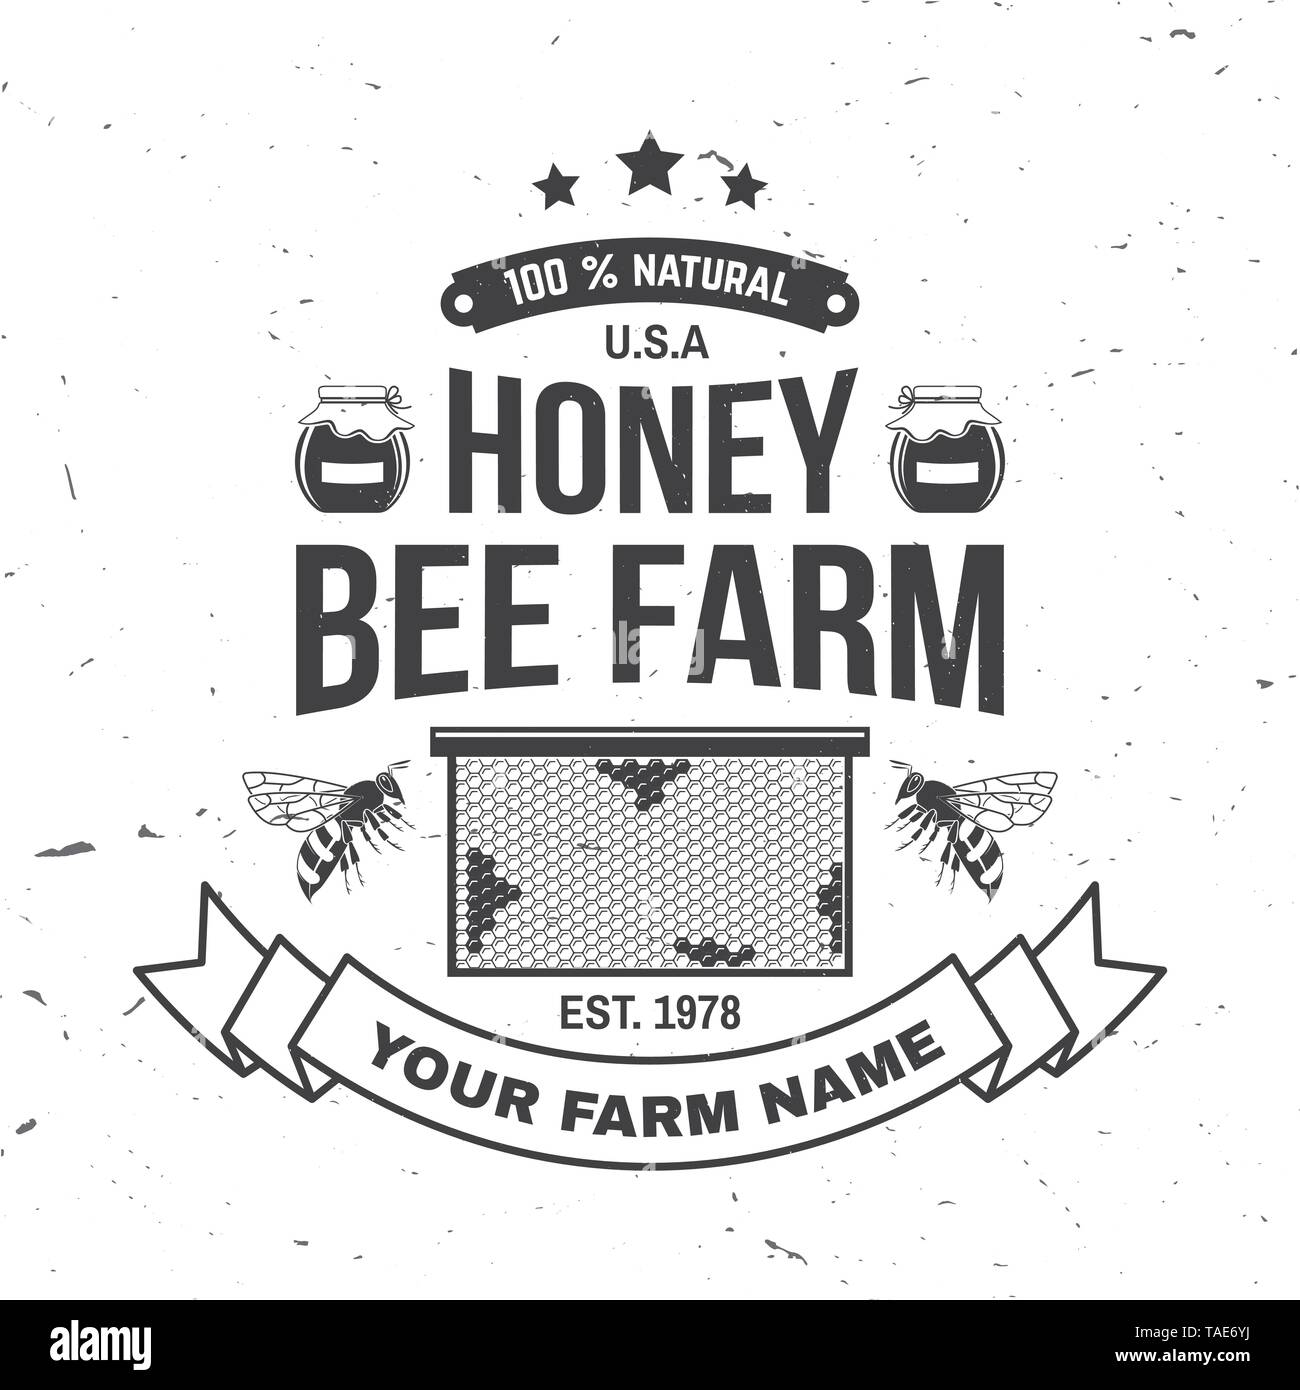 Honey farm badge. Vector illustration. Concept for shirt, print, stamp or tee. Vintage typography design with bee, honeycomb piece silhouette. Retro design for honey bee farm business - Stock Image